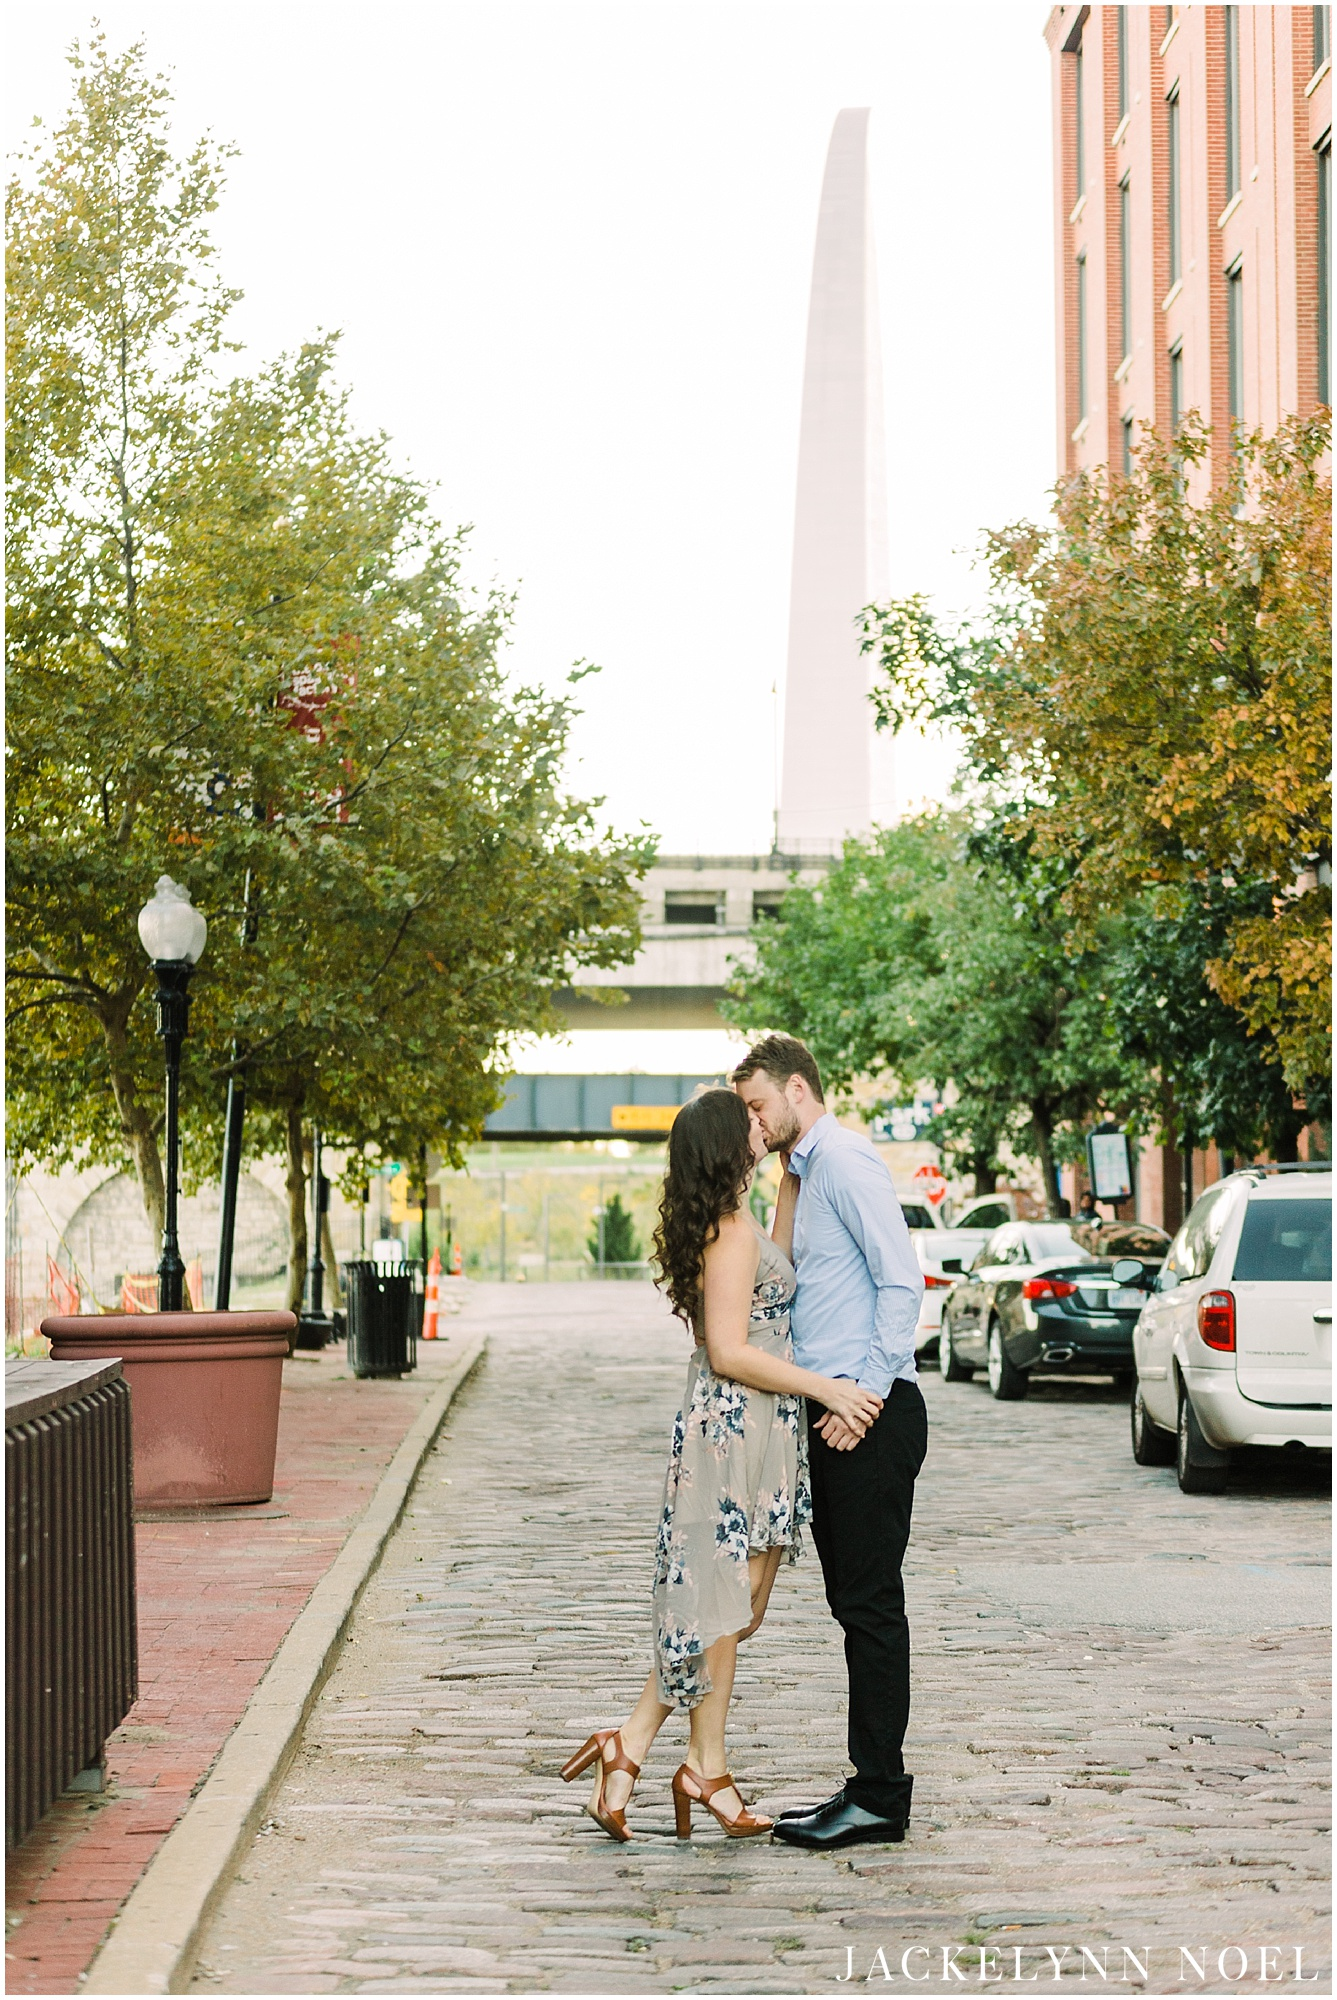 Danika & Joe engagement session at the St. Louis Landing by Jackelynn Noel Photography